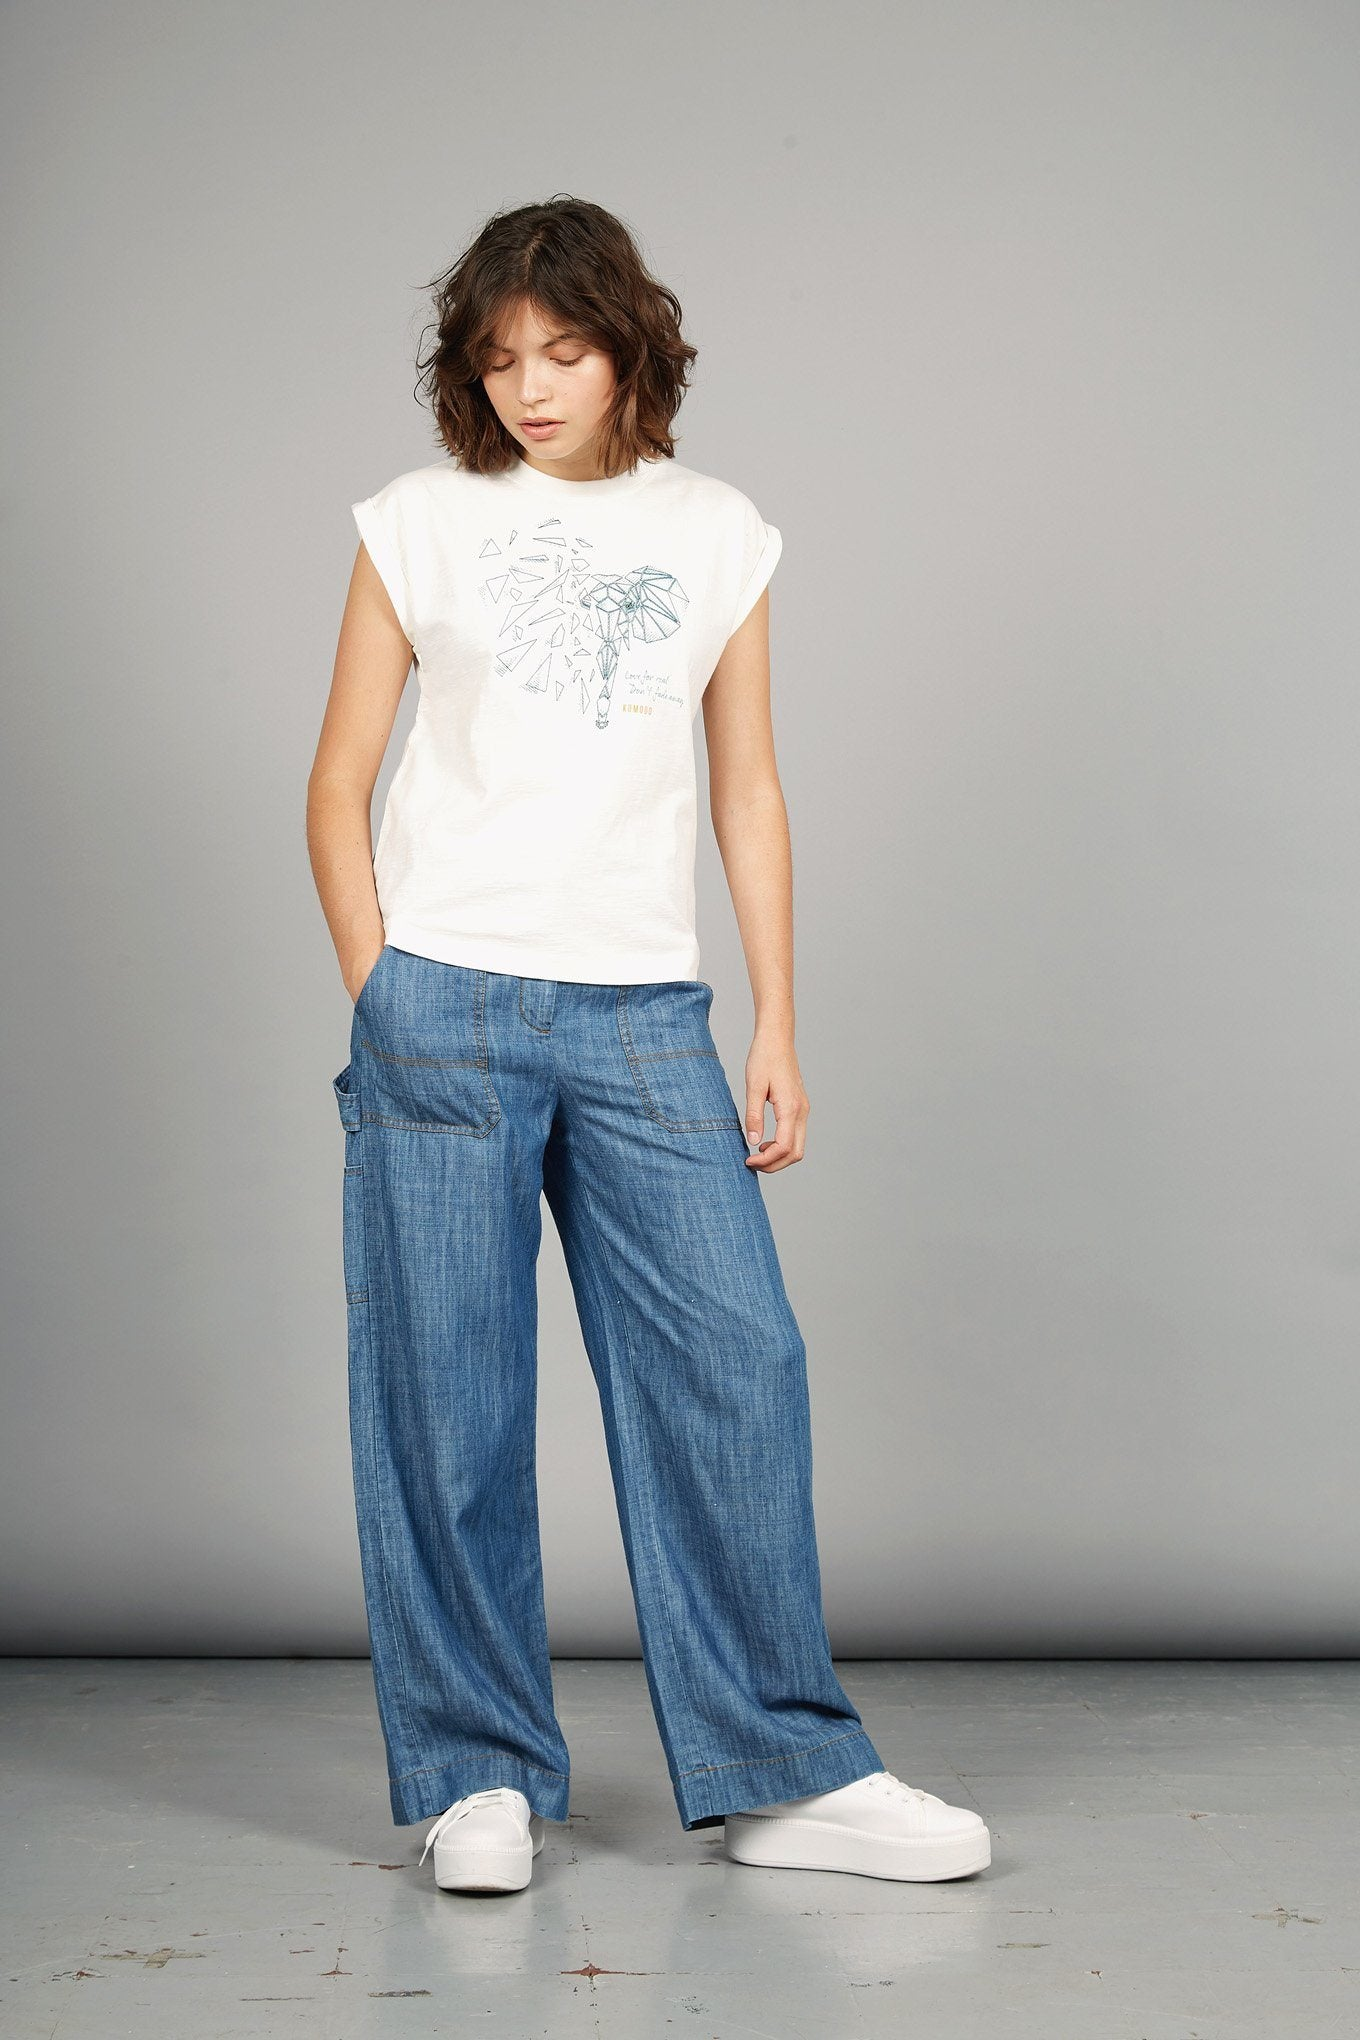 MANTRA ELEPHANT Organic Cotton Tee - Komodo Fashion